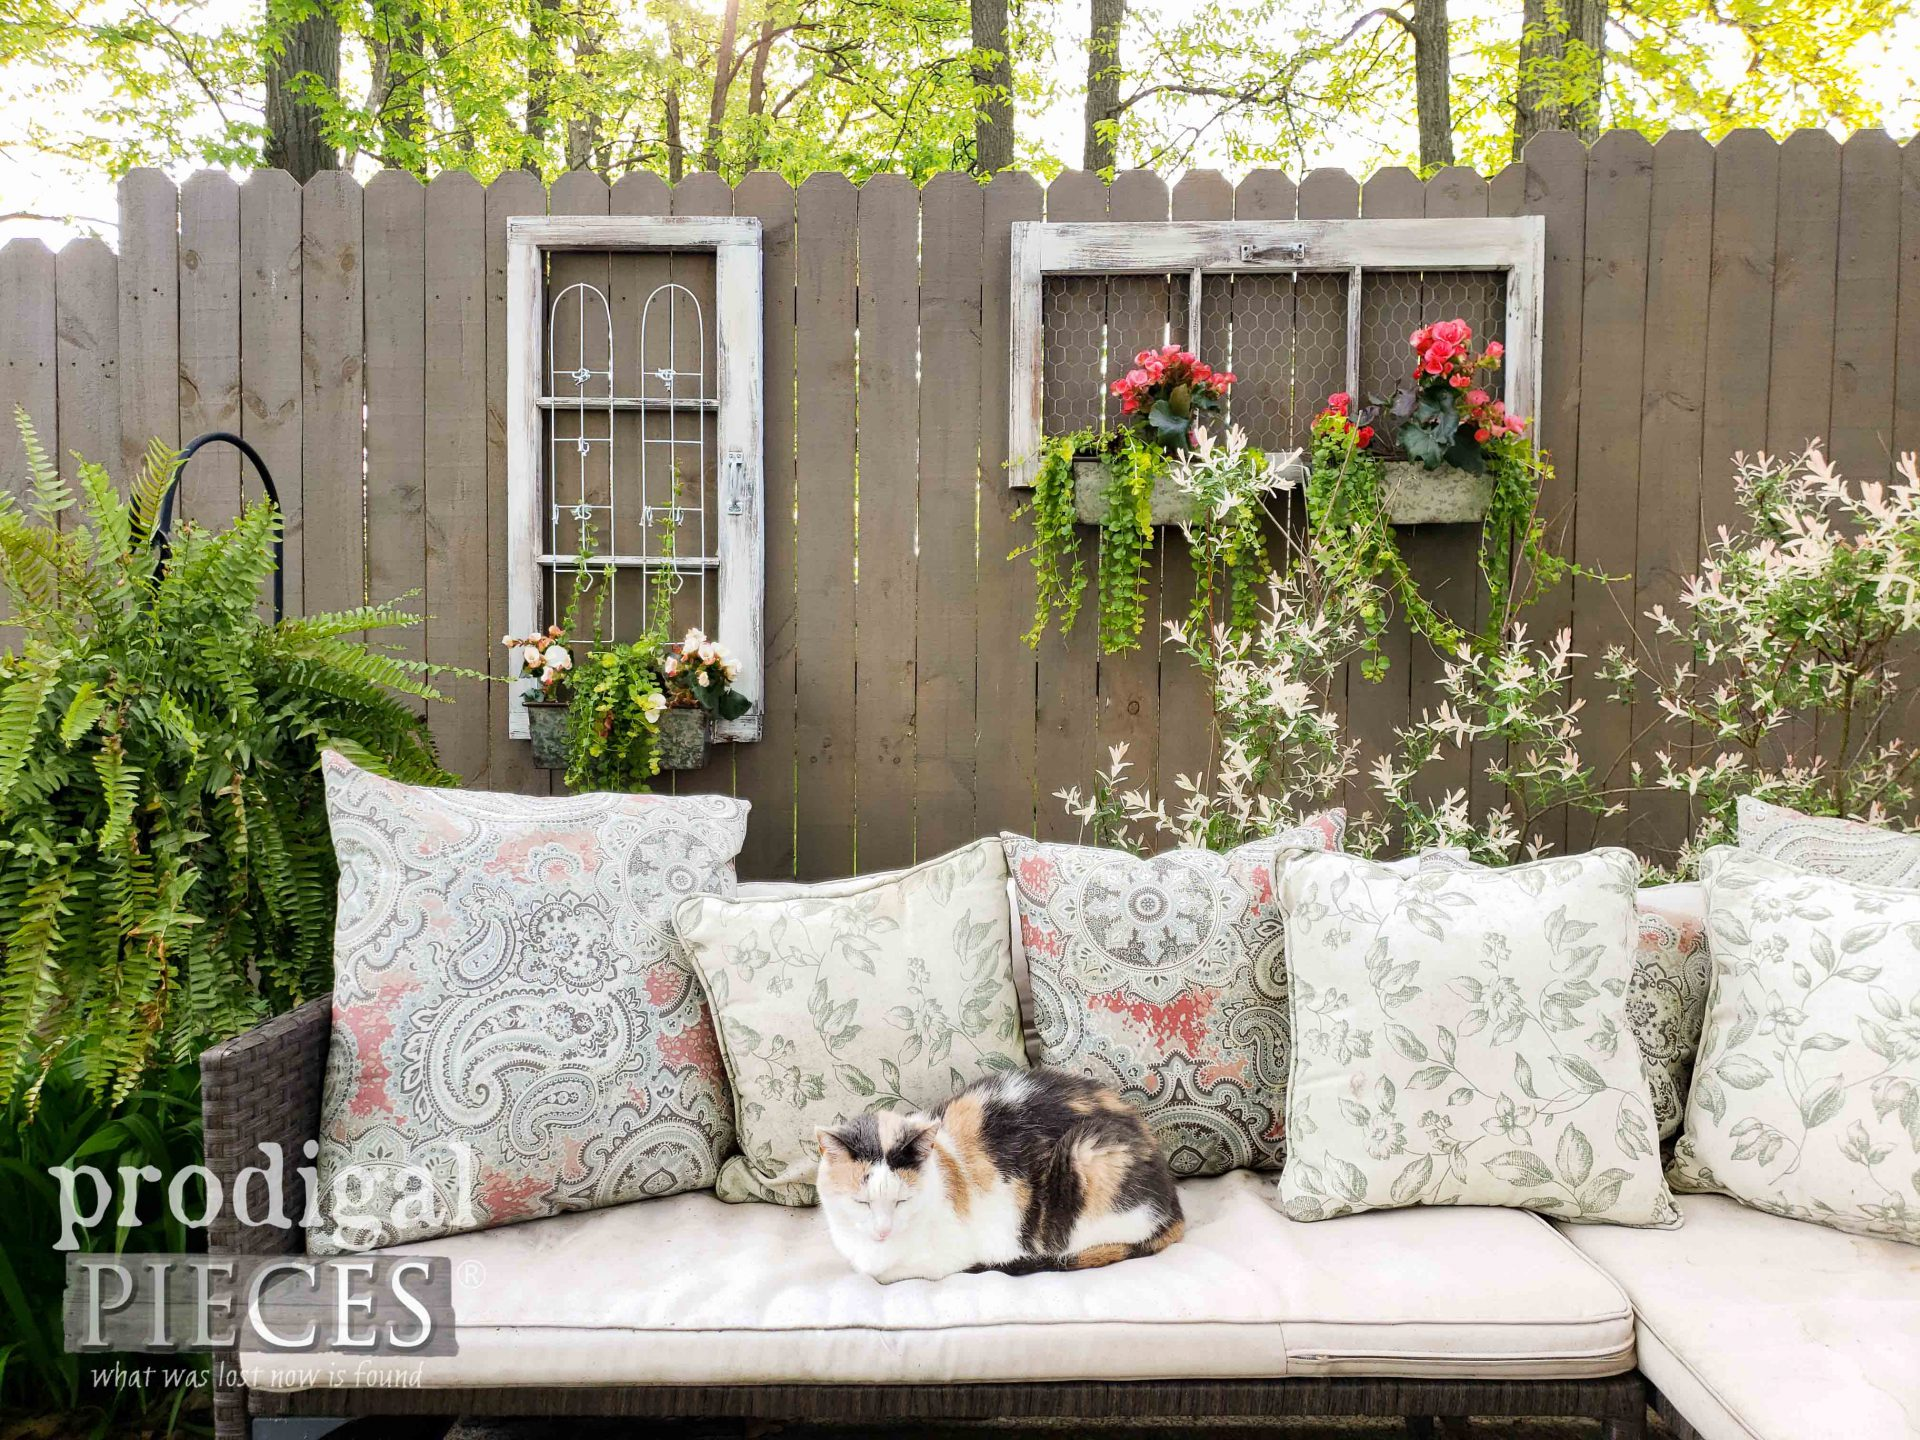 Calico Cat with DIY Patio Decor by Larissa of Prodigal Pieces | prodigalpieces.com #prodigalpieces #diy #home #homedecor #garden